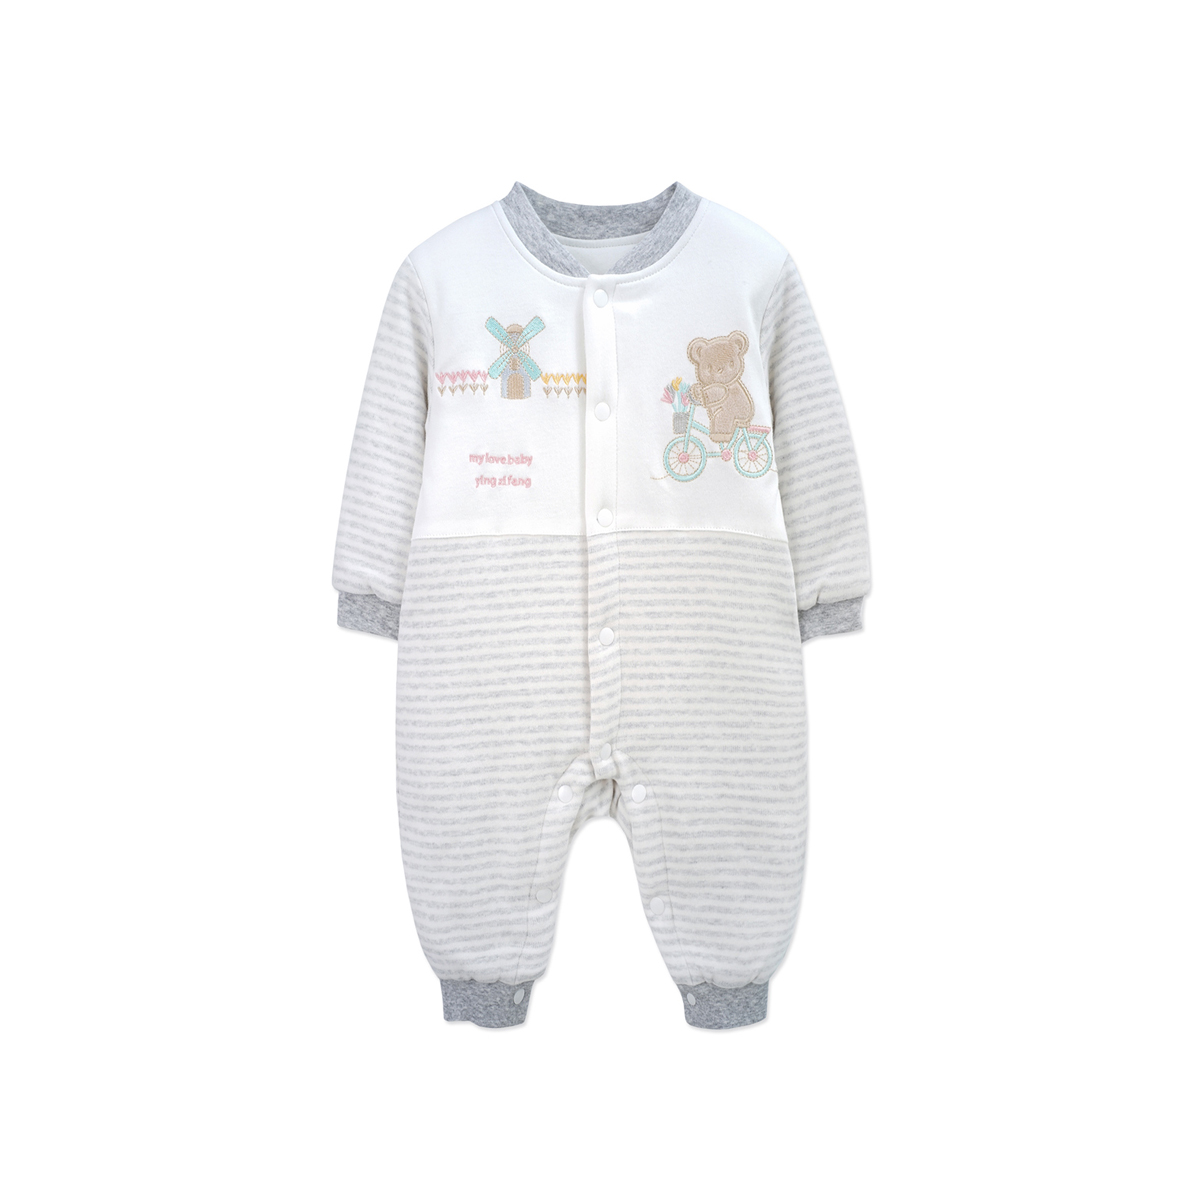 YINGZIFANG Autumn Baby Rompers 2018 Fashion Cute Pattern Newborn Clothing Soft Long Sleeve Rompers Cotton Infant Jumpsuit i k new spring autumn baby clothes infant rompers thick warm cotton jumpsuit soft pajamas flower pattern long sleeves py25040